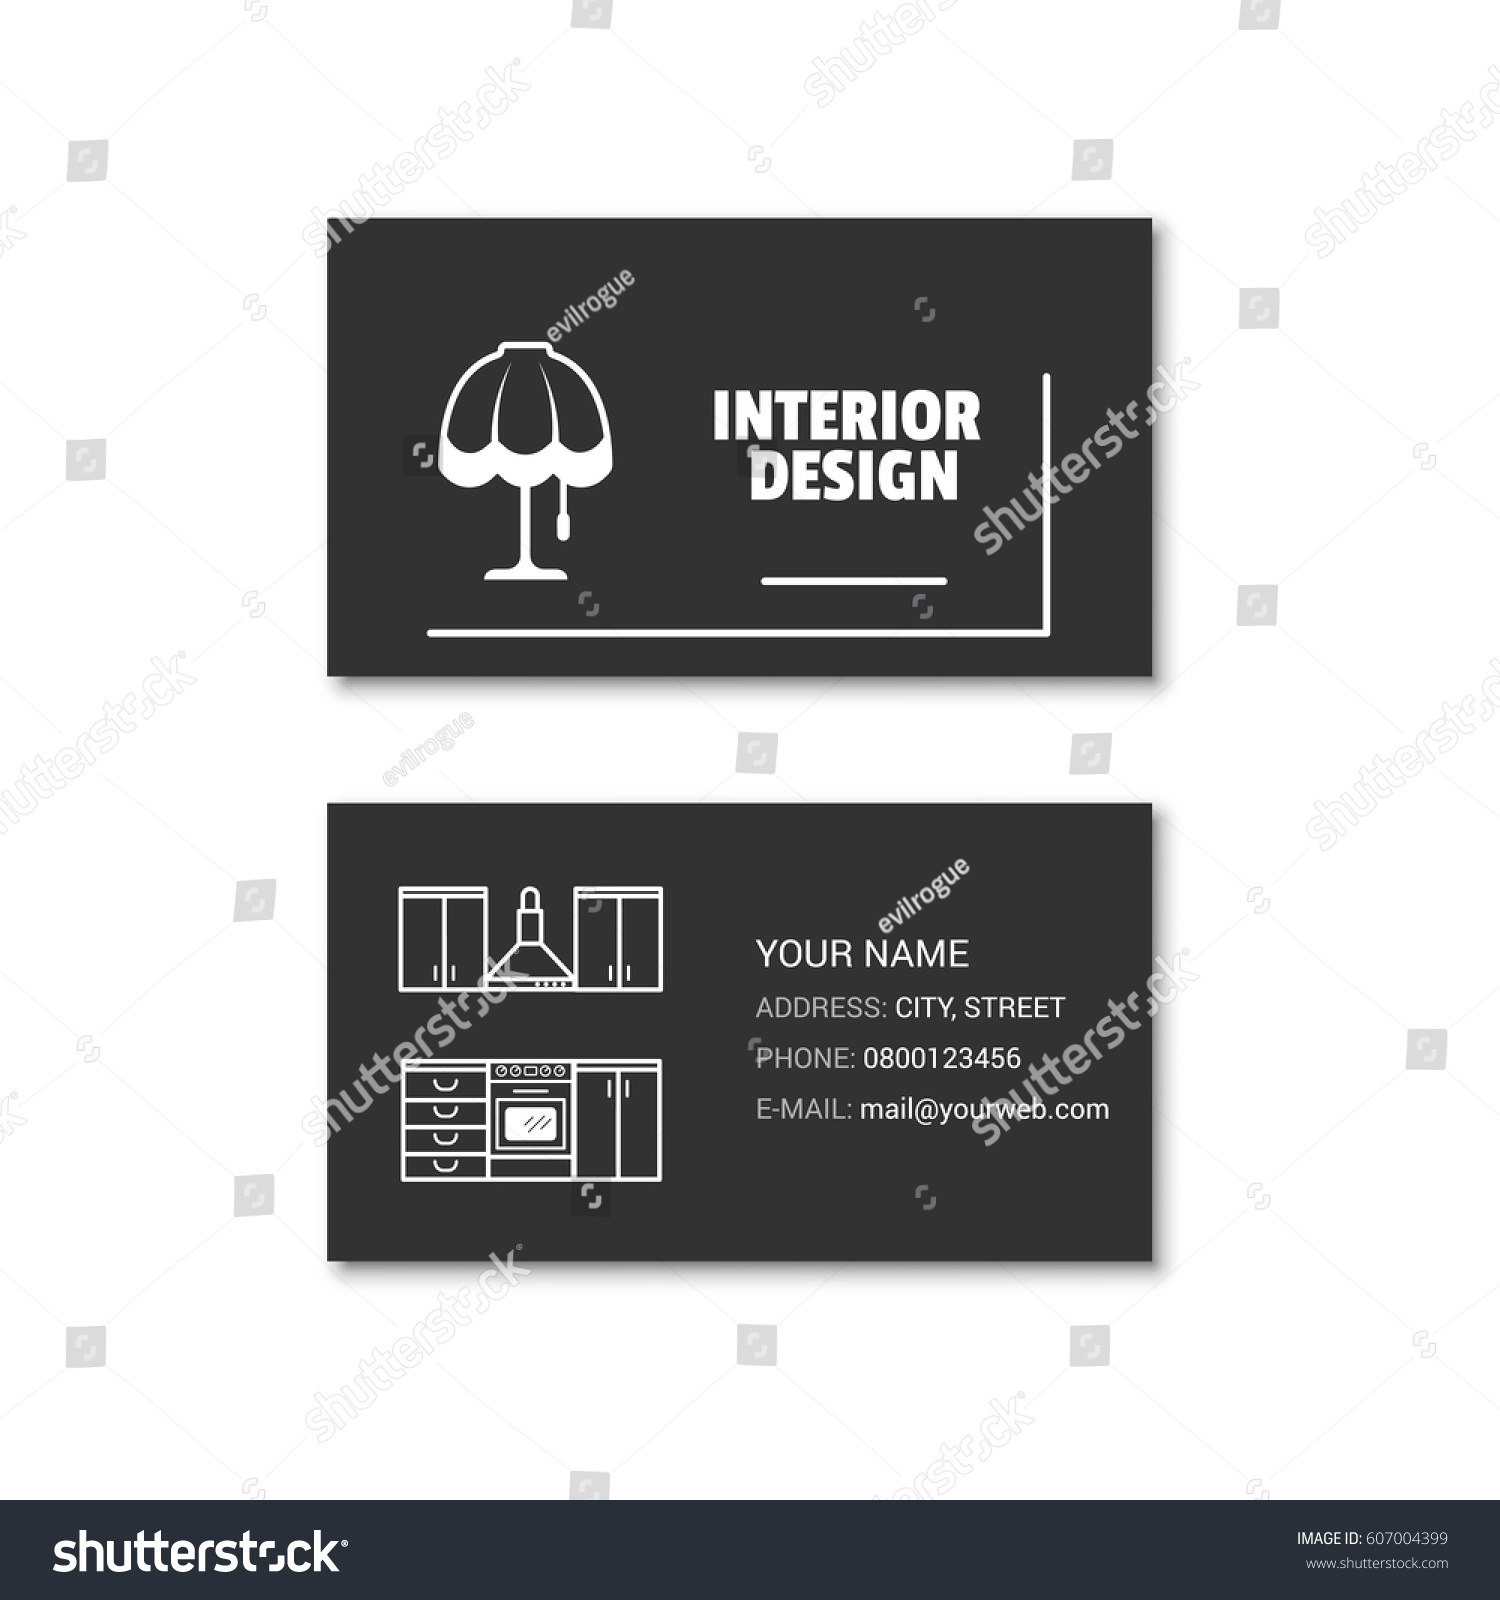 Simple Business Card Interior Designer Vector Stock Vector ...